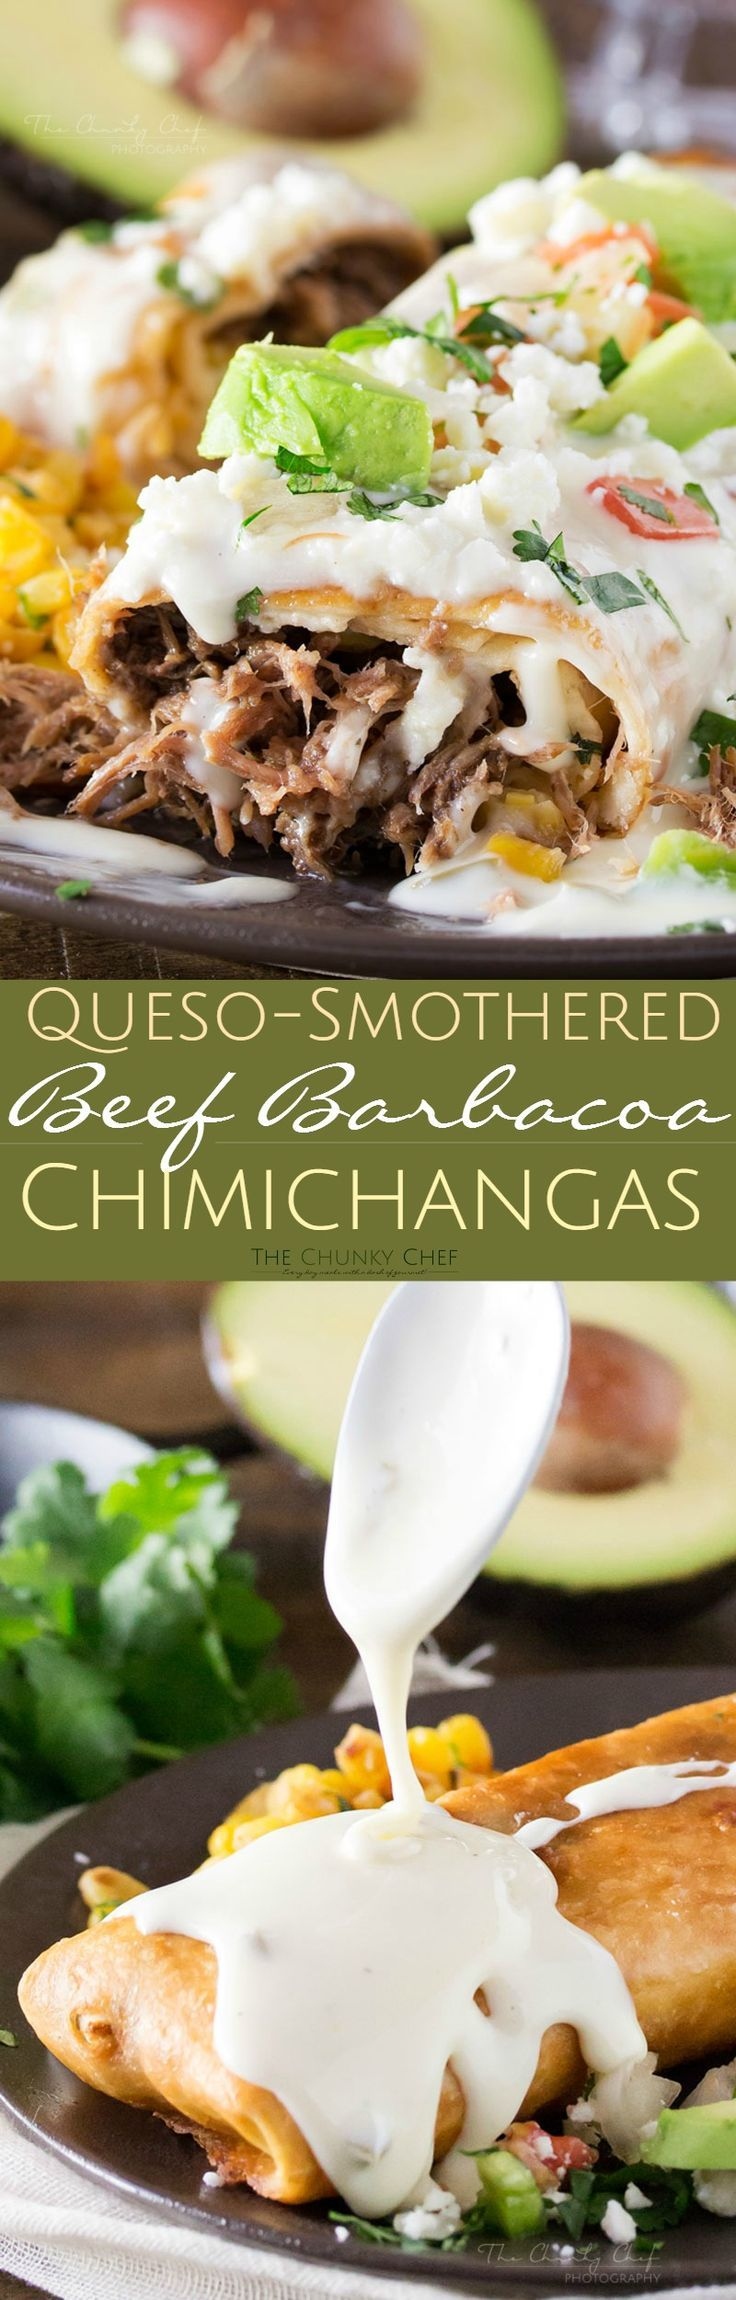 Spicy, slow cooked beef barbacoa stuffed into a tortilla and fried to crunchy perfection, smothered in a velvety smooth white queso... perfect chimichangas!